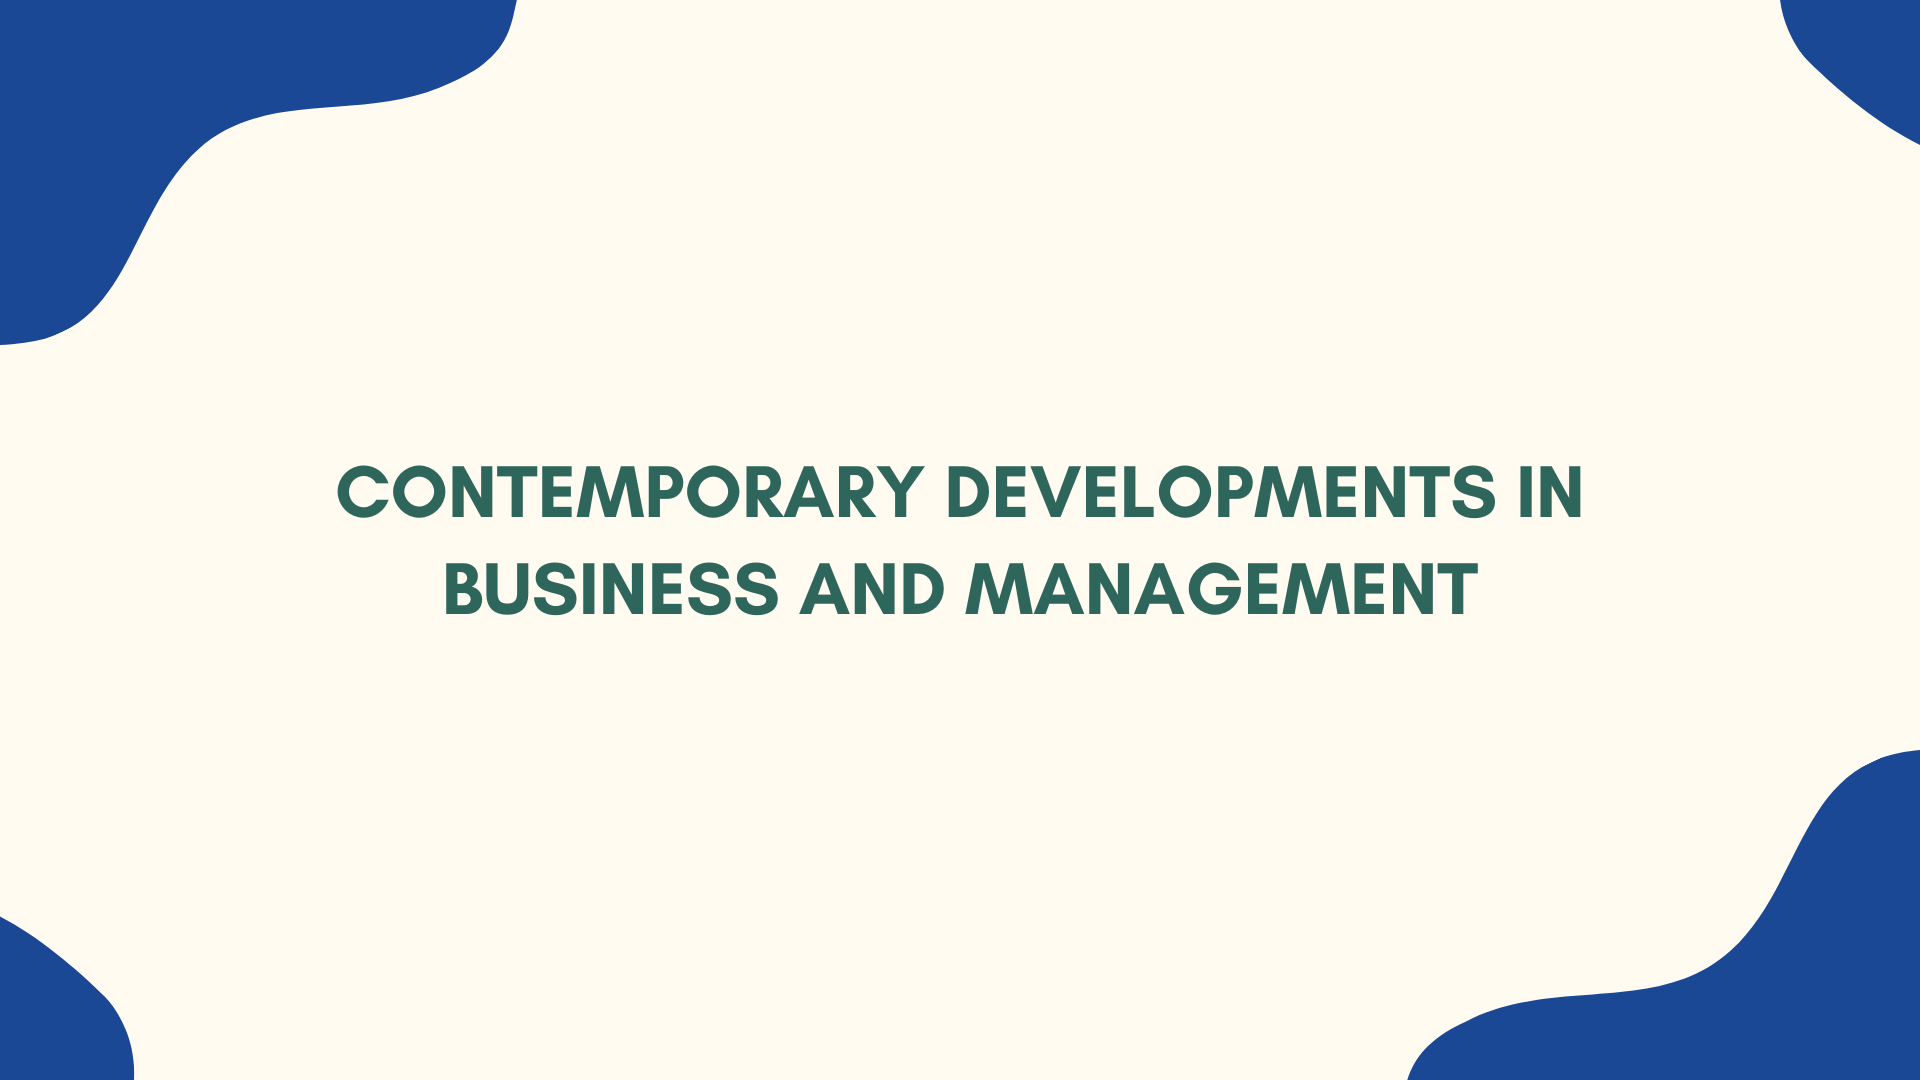 Contemporary Developments in Business and Management: Greggs Plc